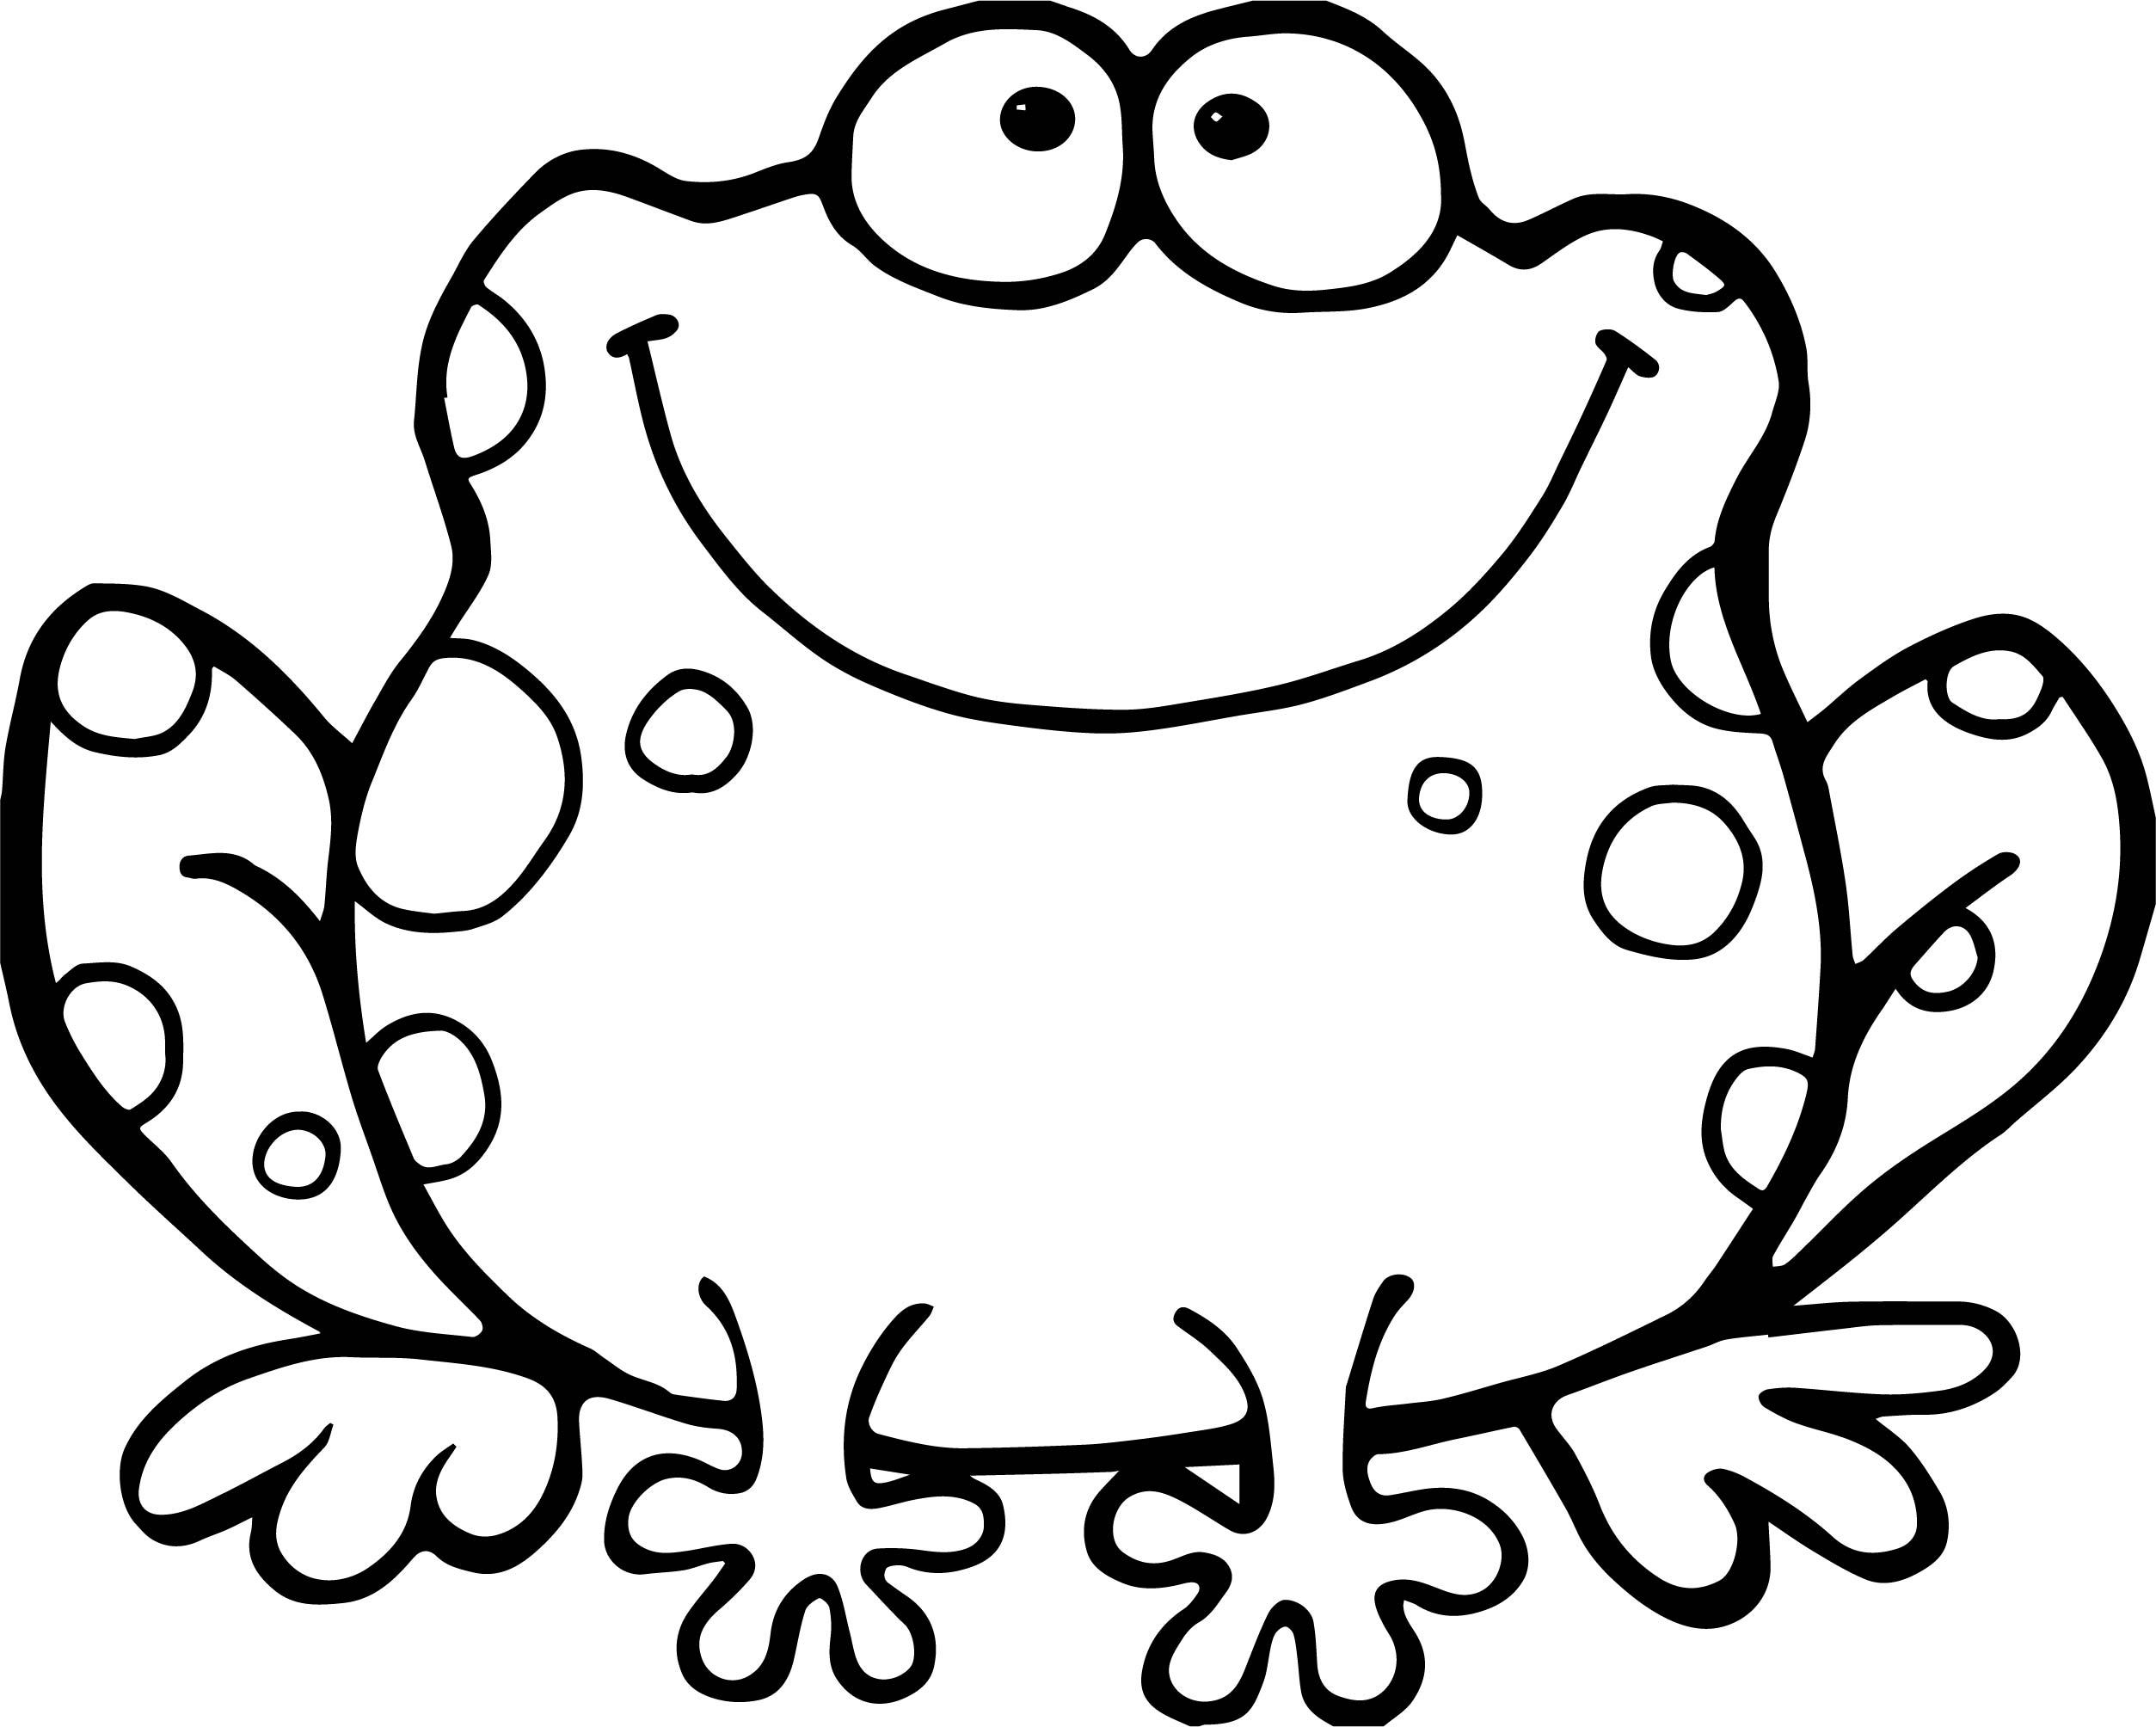 Big Frog Coloring Worksheets Coloring Pages